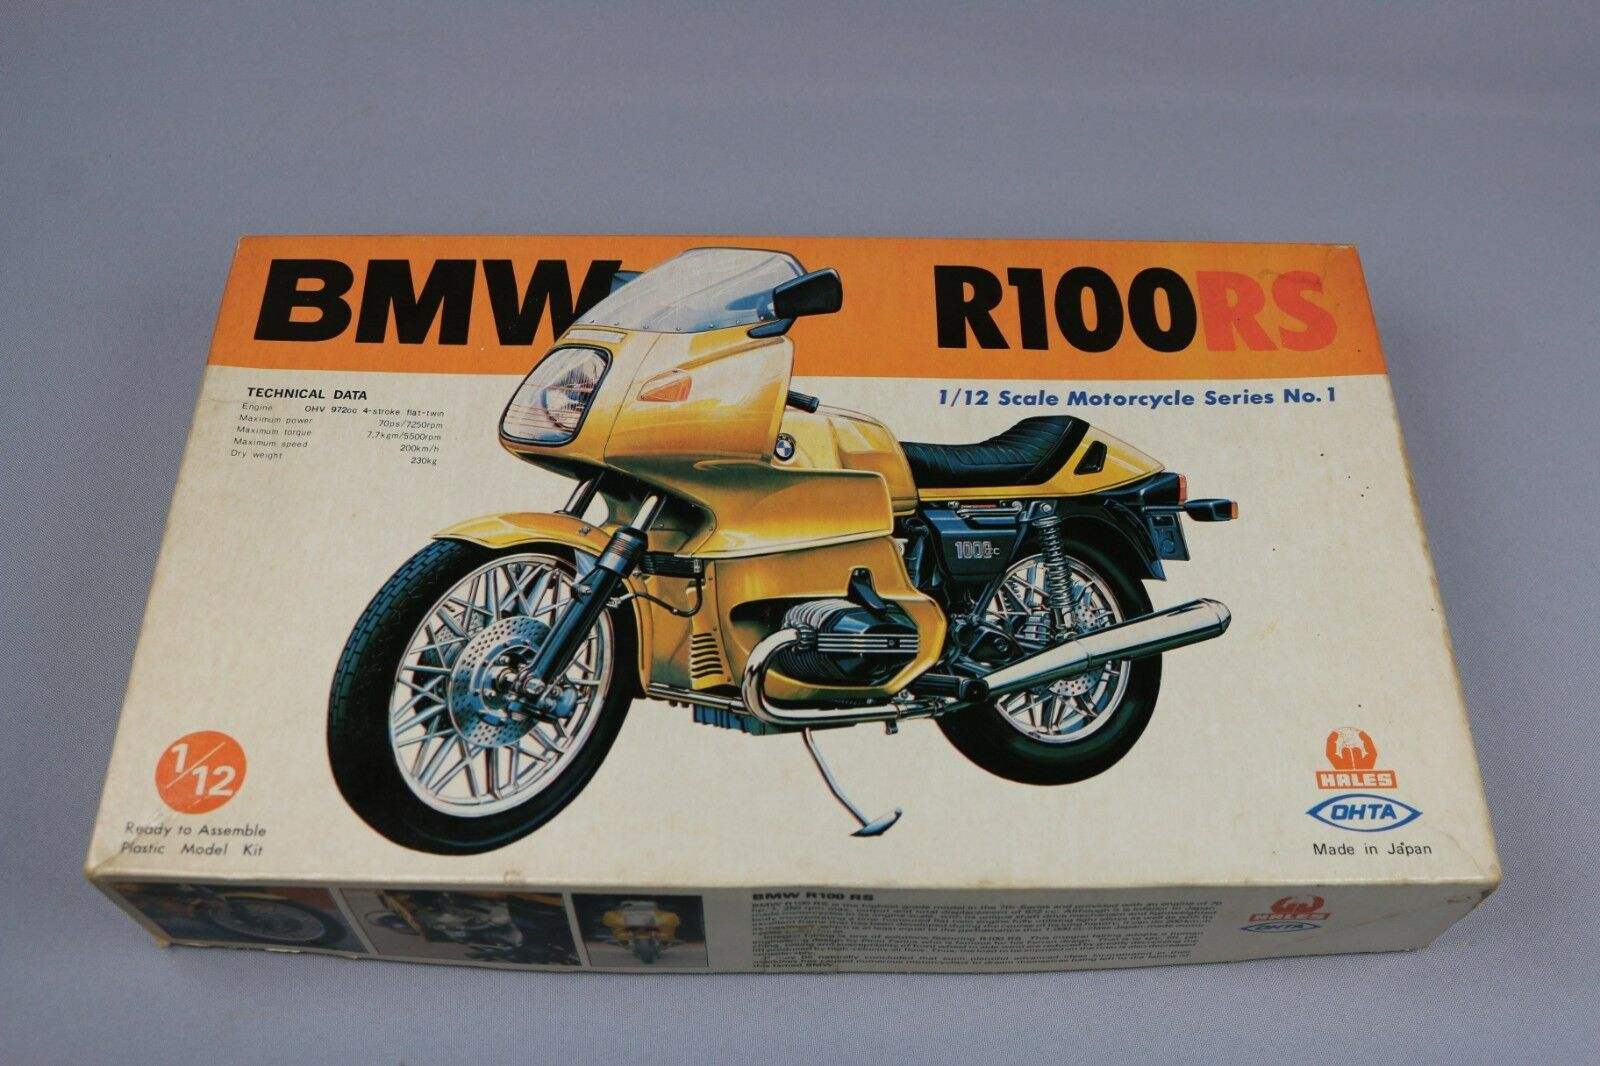 Zf1033 Hales Ohta 1 12 Model M12021-1000 BMW R100rs Motorcycle Series No. 1